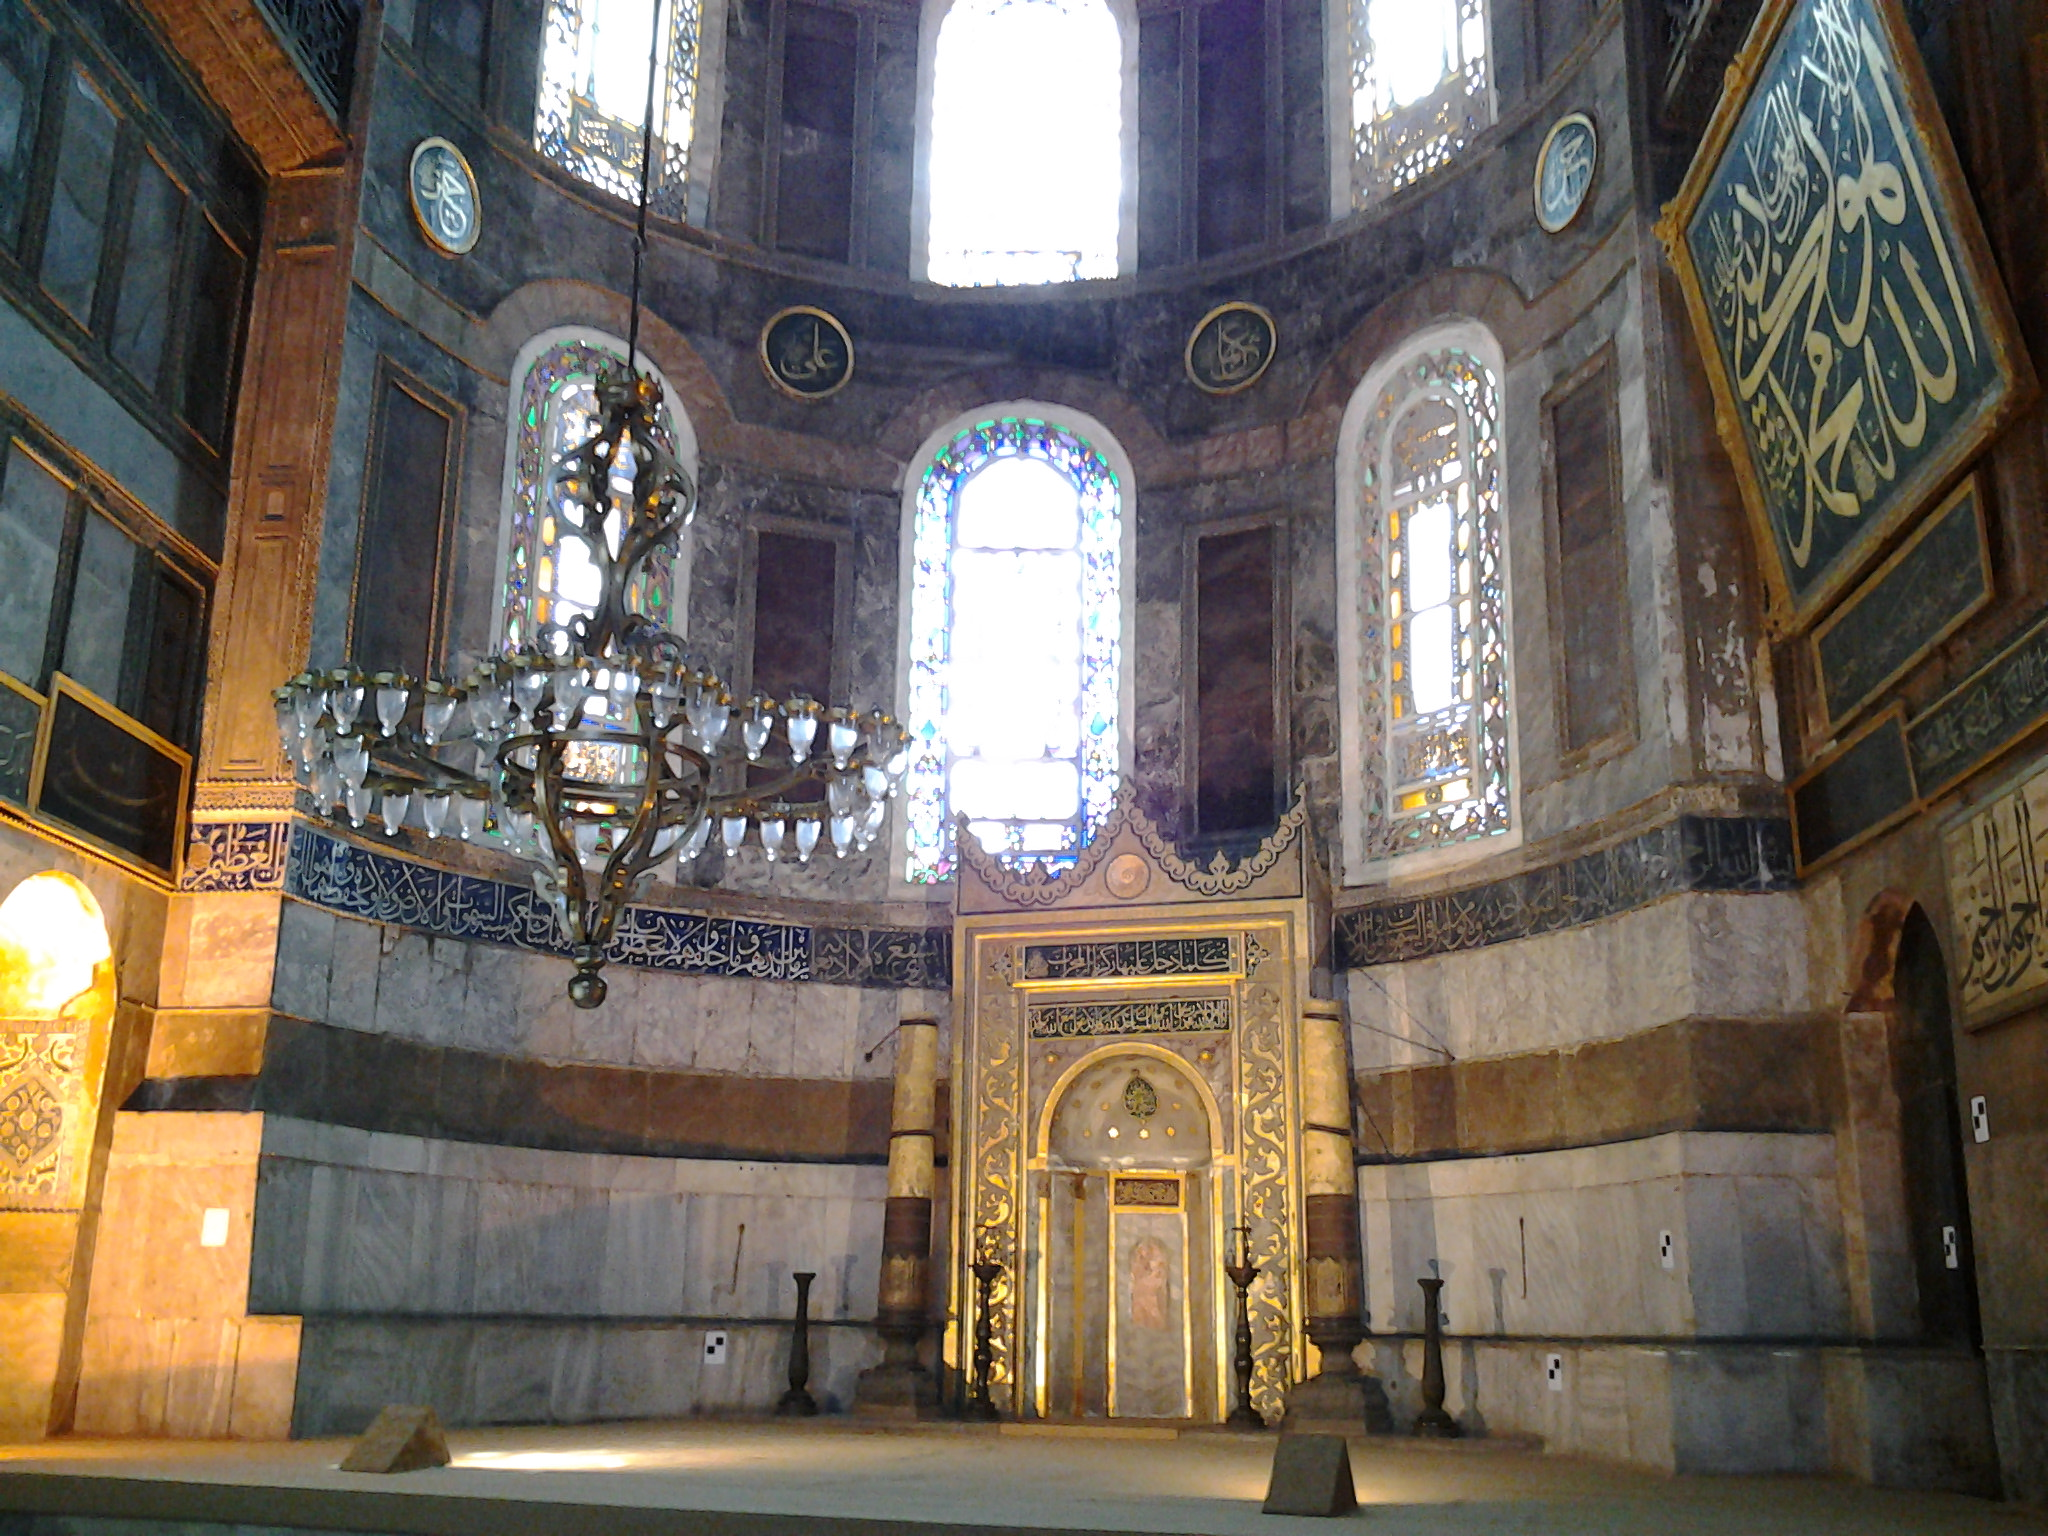 Don't Let The Lines At The Hagia Sophia Deter You From Seeing It | Around The World With Steve